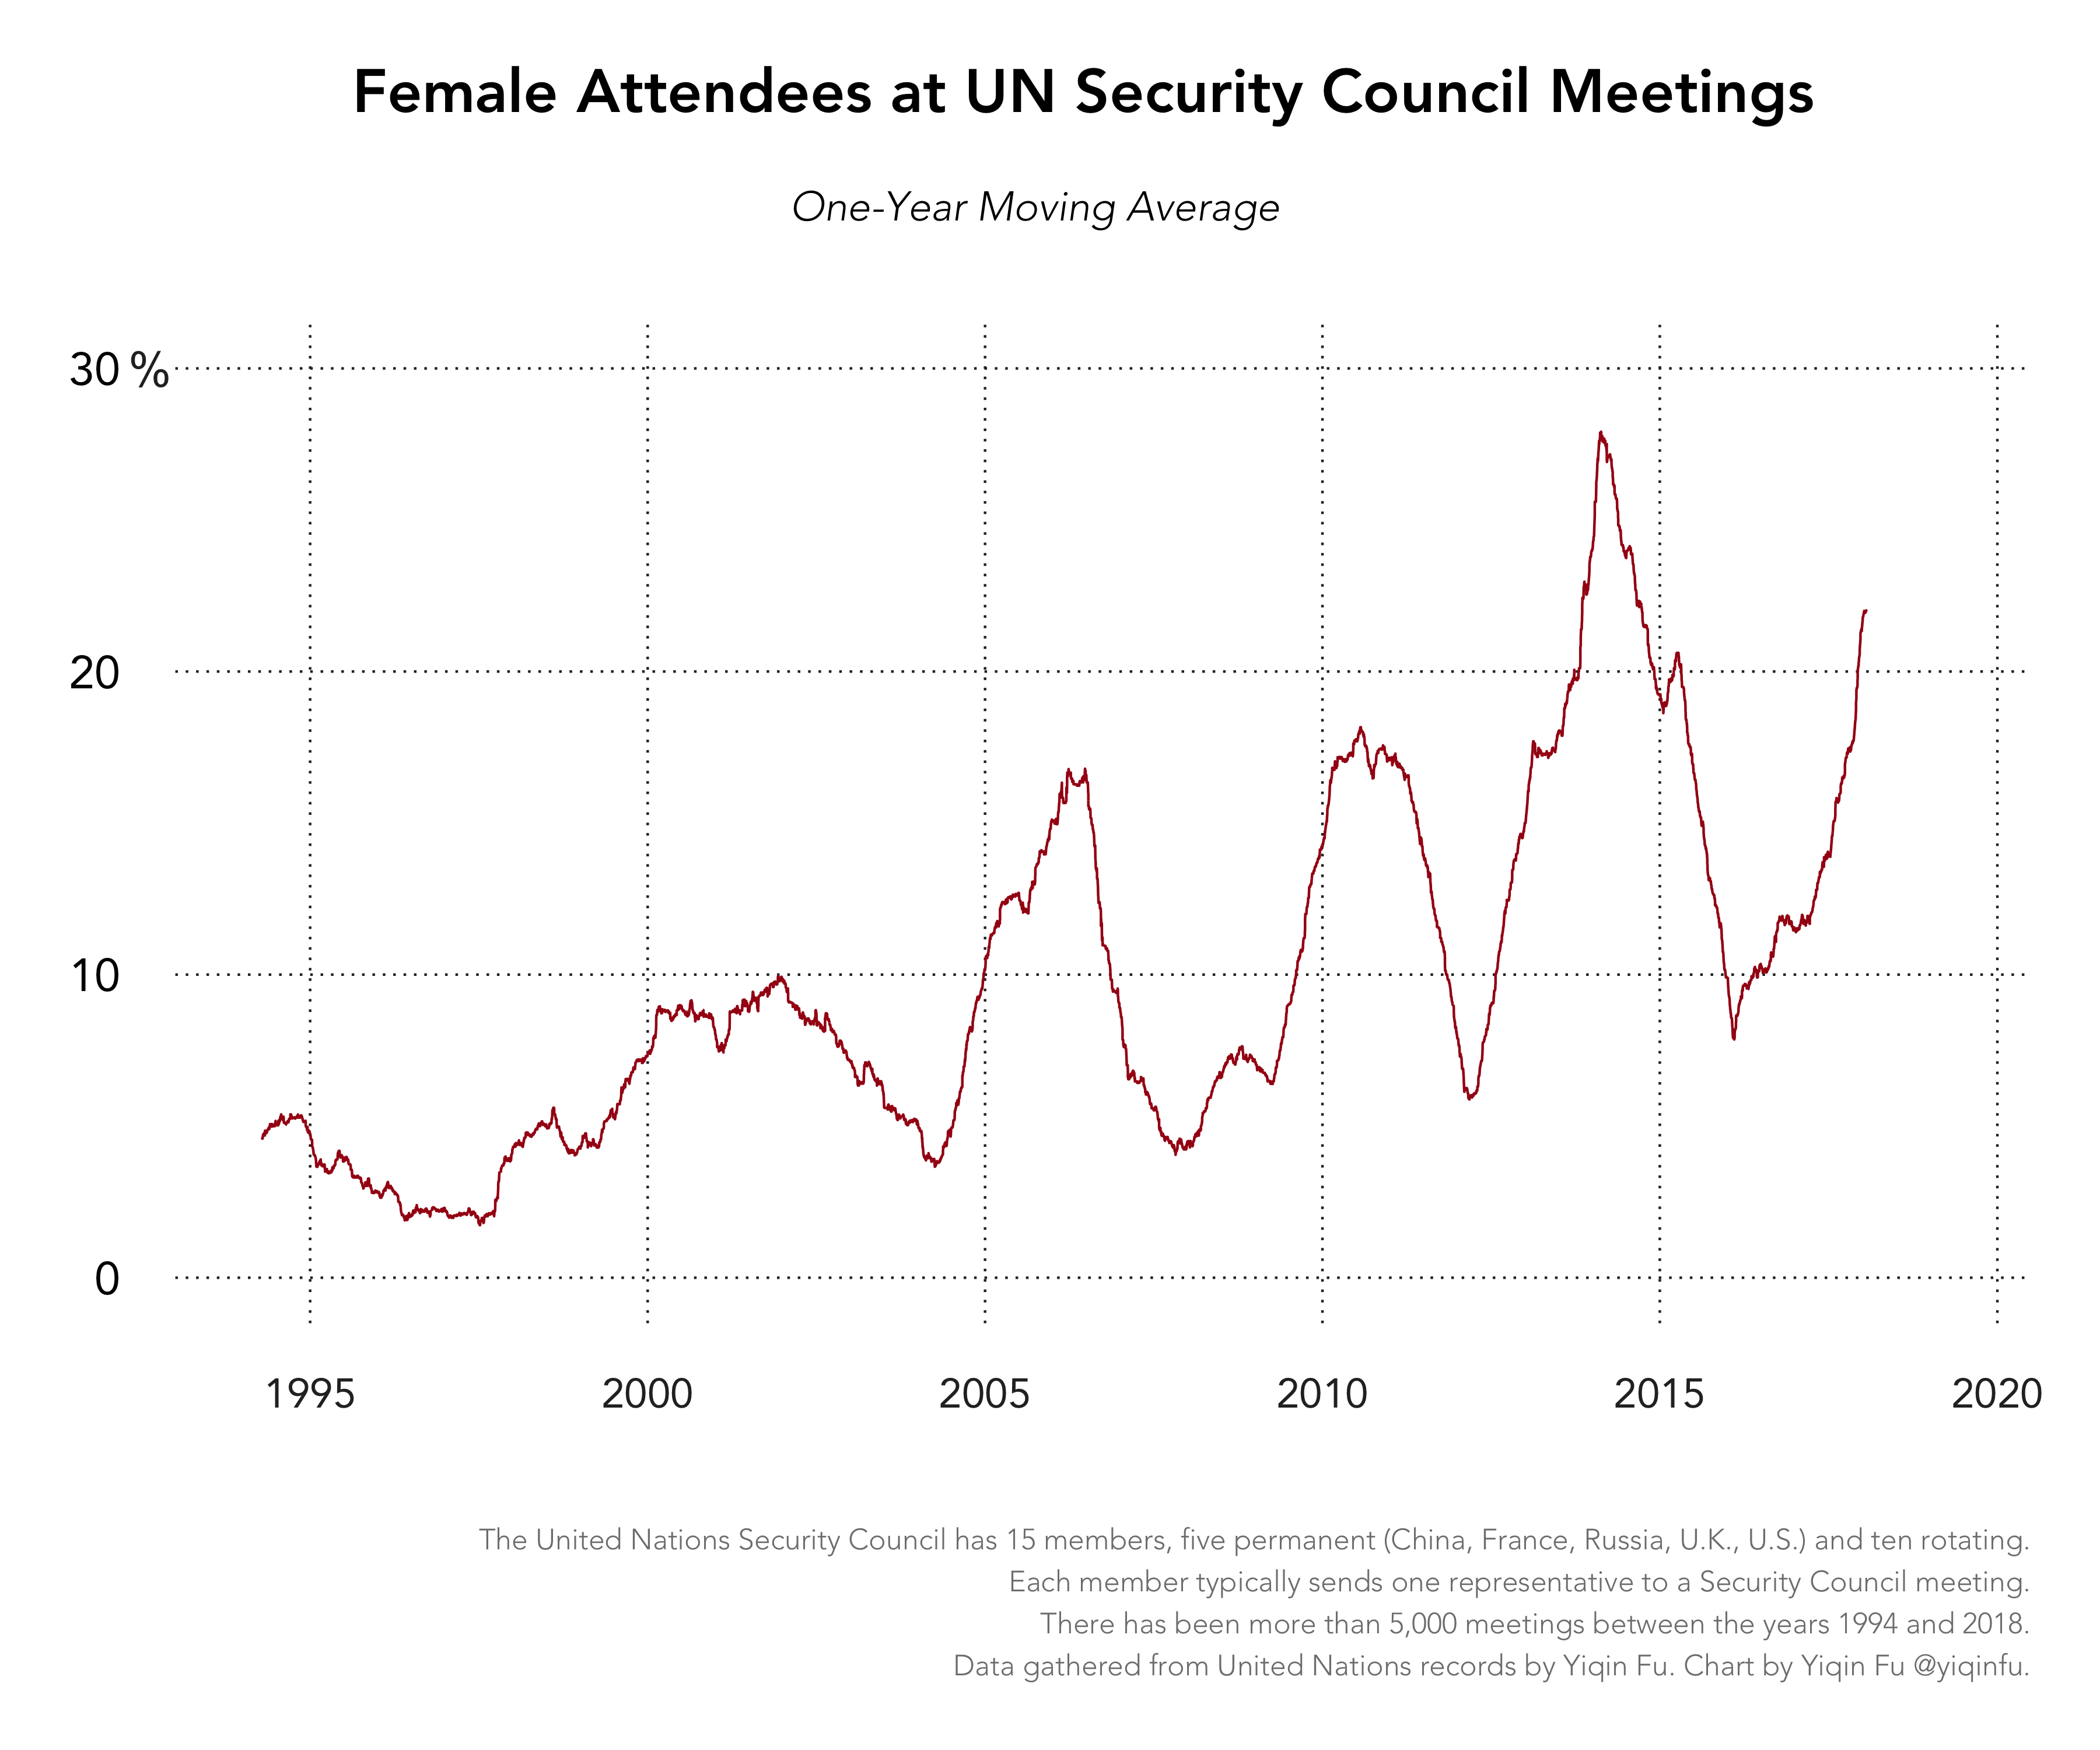 women-unsc-appearance-timeseries-sma